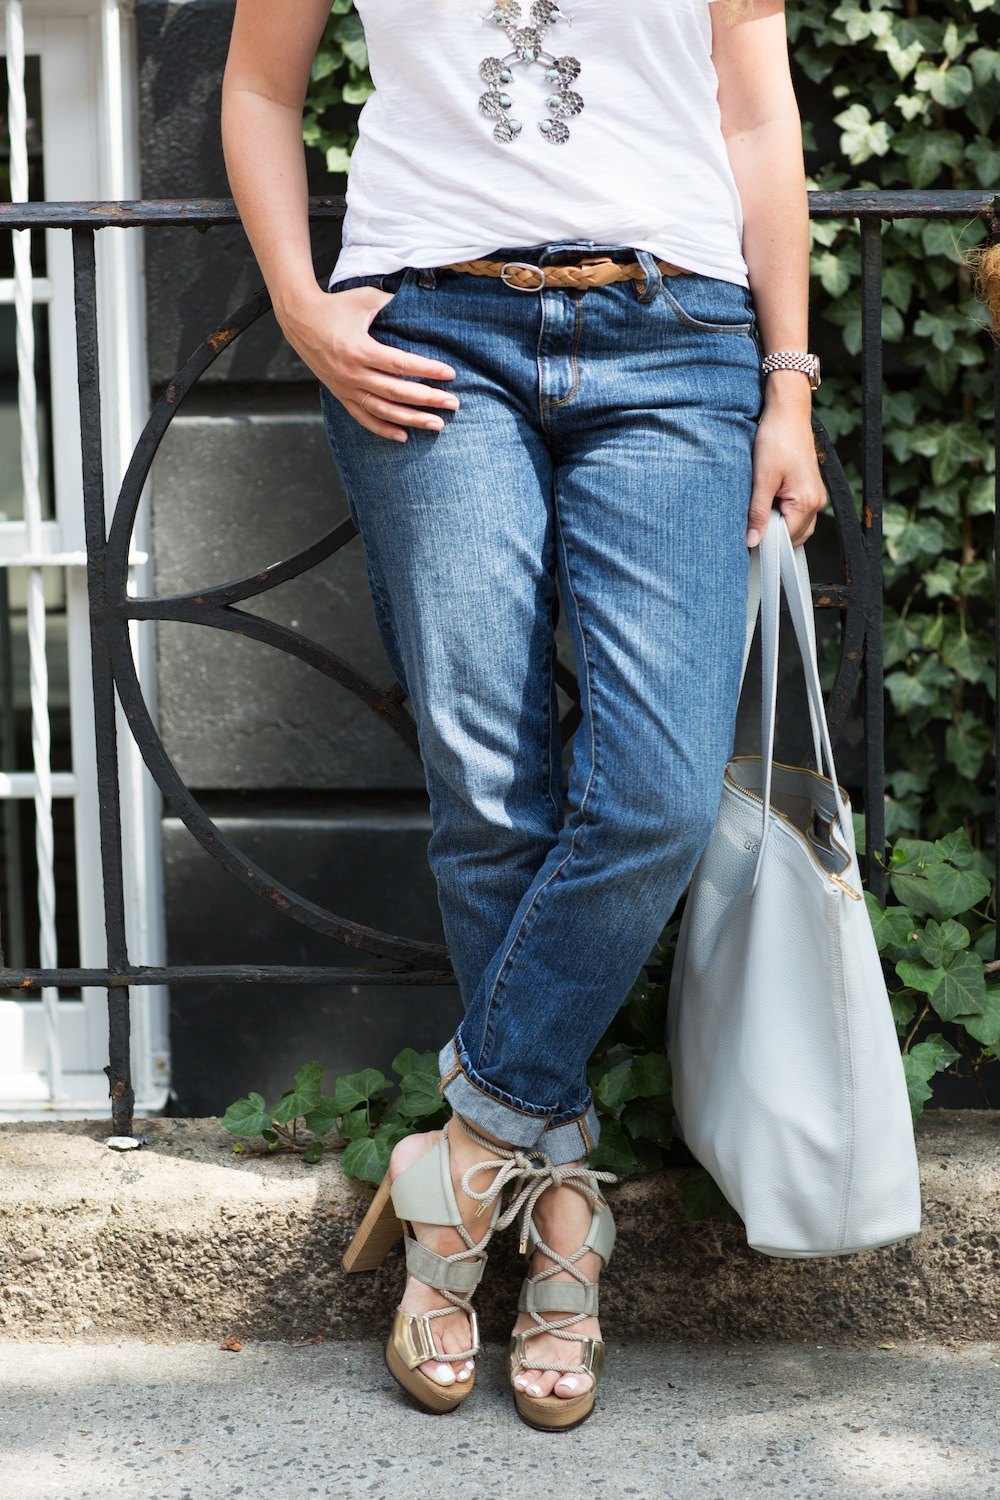 Grana Slub Knit Tee + Slim Boyfriend Jeans, BaubleBar Squash Blossom Necklace, Jimmy Choo Henni Sandals, Cuyana Tote - Grace Atwood, The Stripe